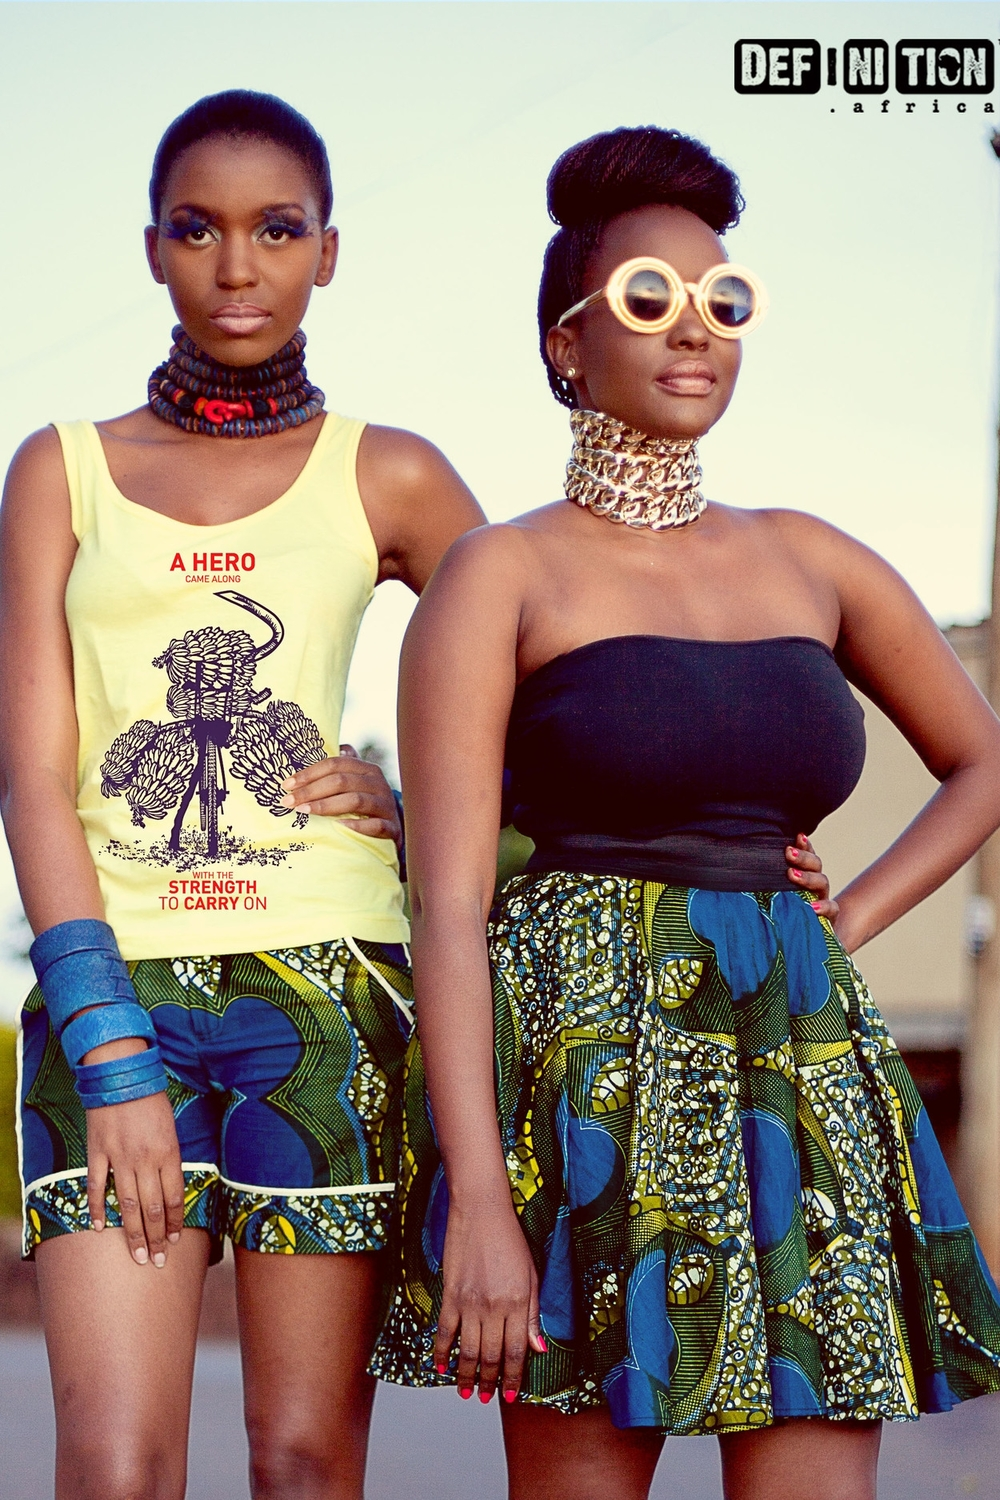 Definition Africa - Vest, Shorts & Skater Skirt - model on the left is wearing Balungi bracelets & necklace.jpg